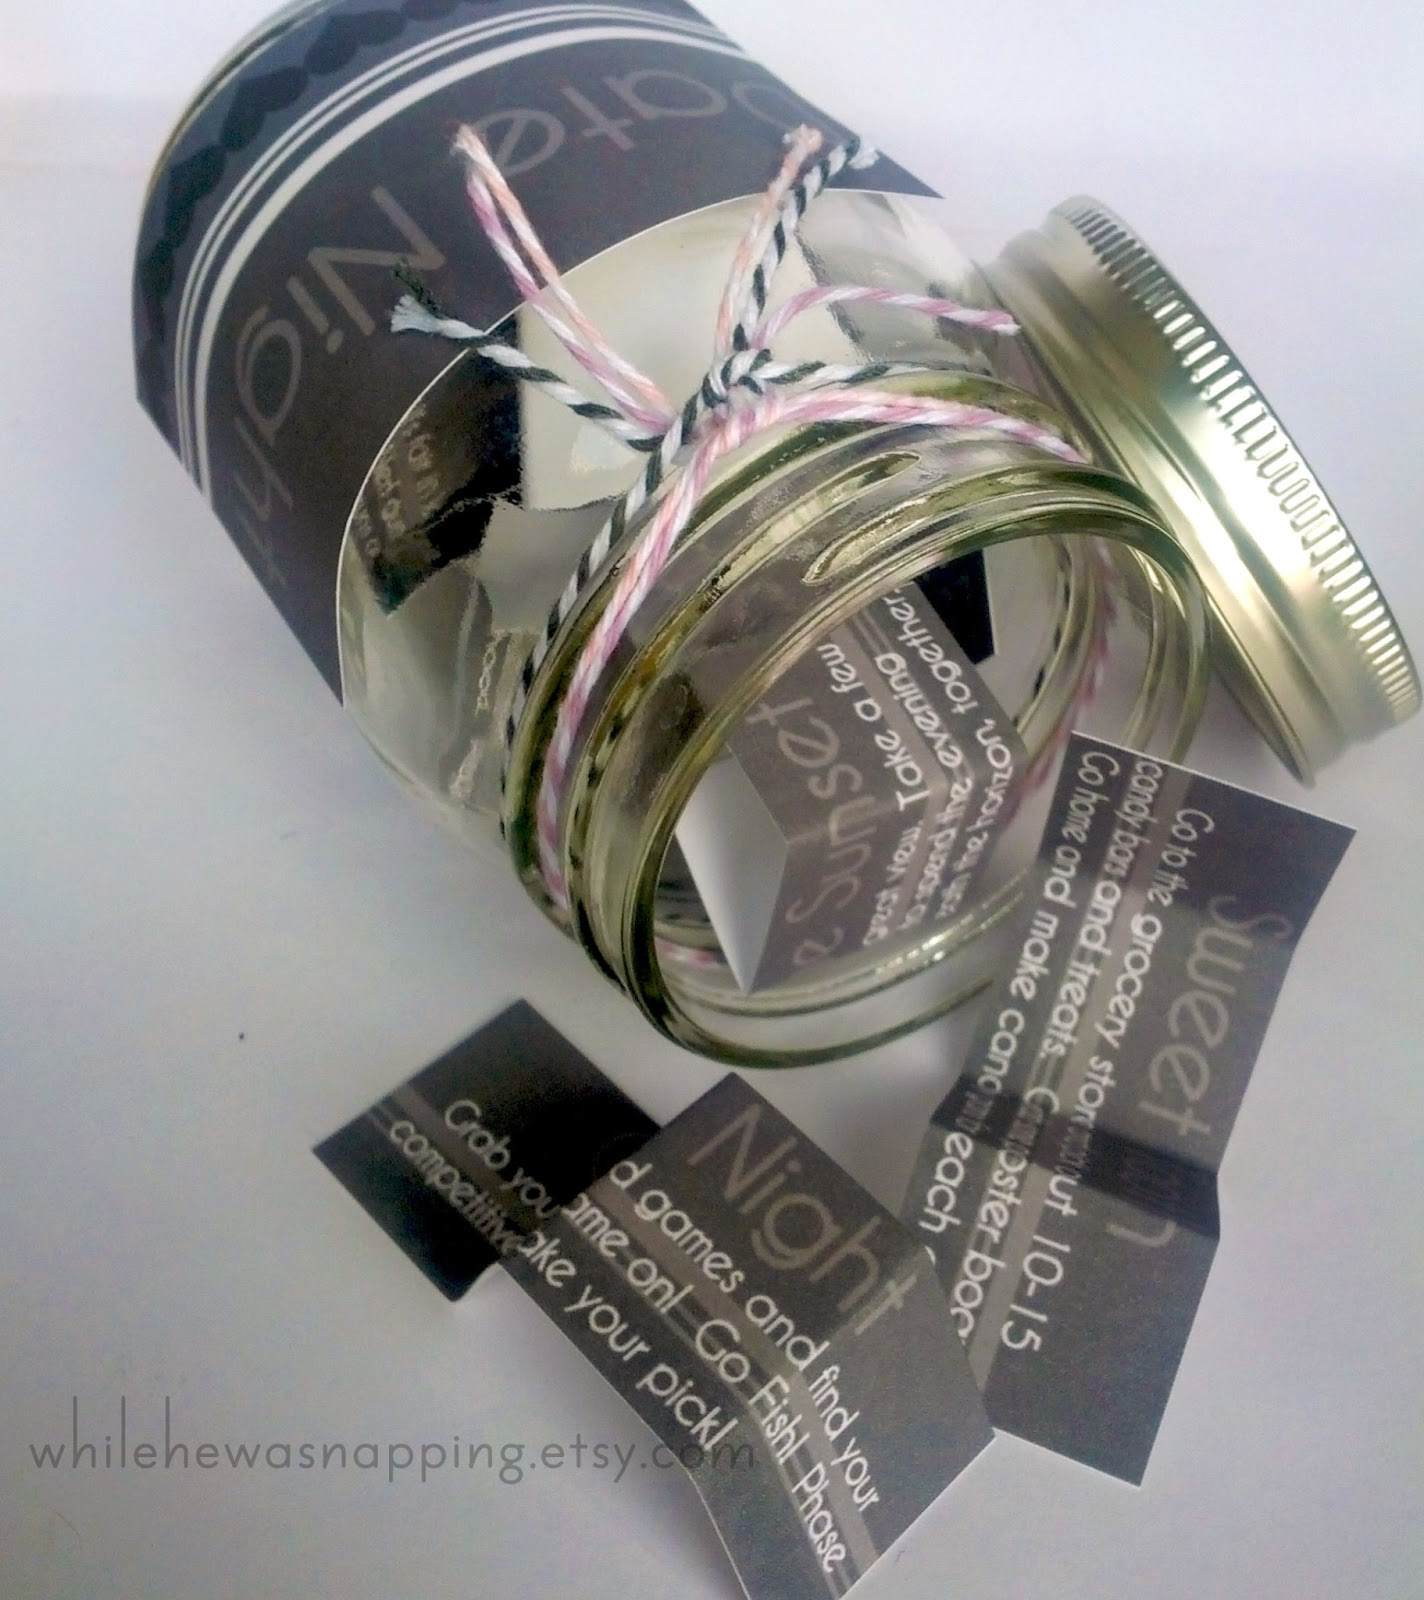 Date Night Jar on Pinterest   Date Nights, Date Ideas and At Home ...